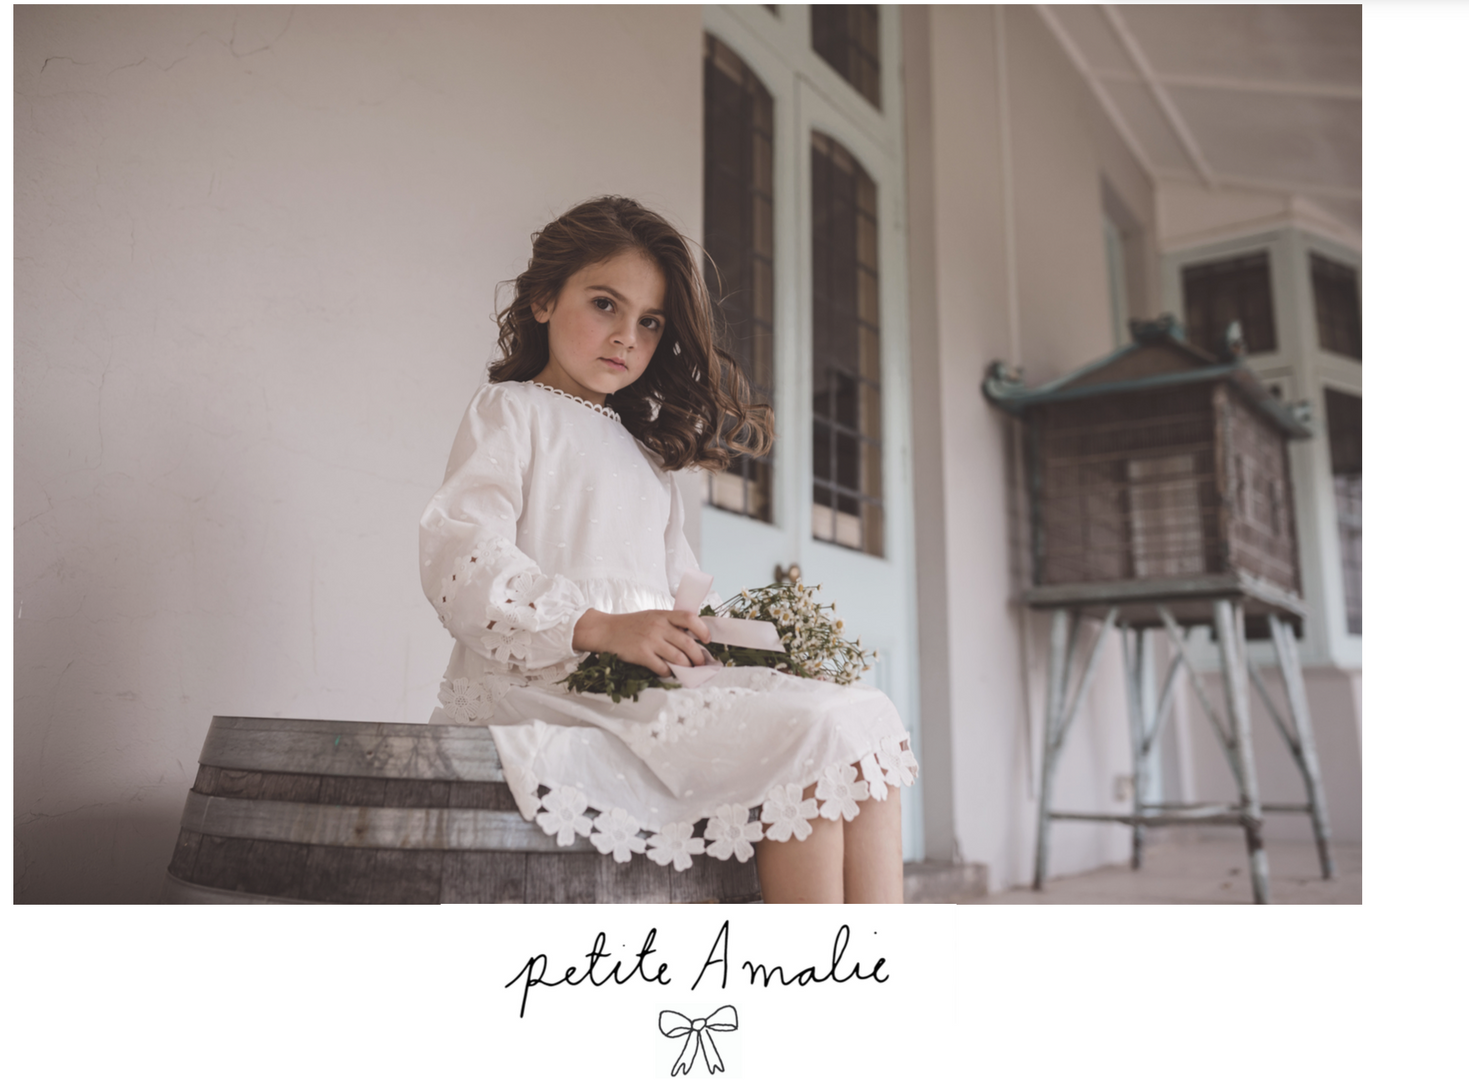 PETITE AMALIE HOME PAGE pic.png